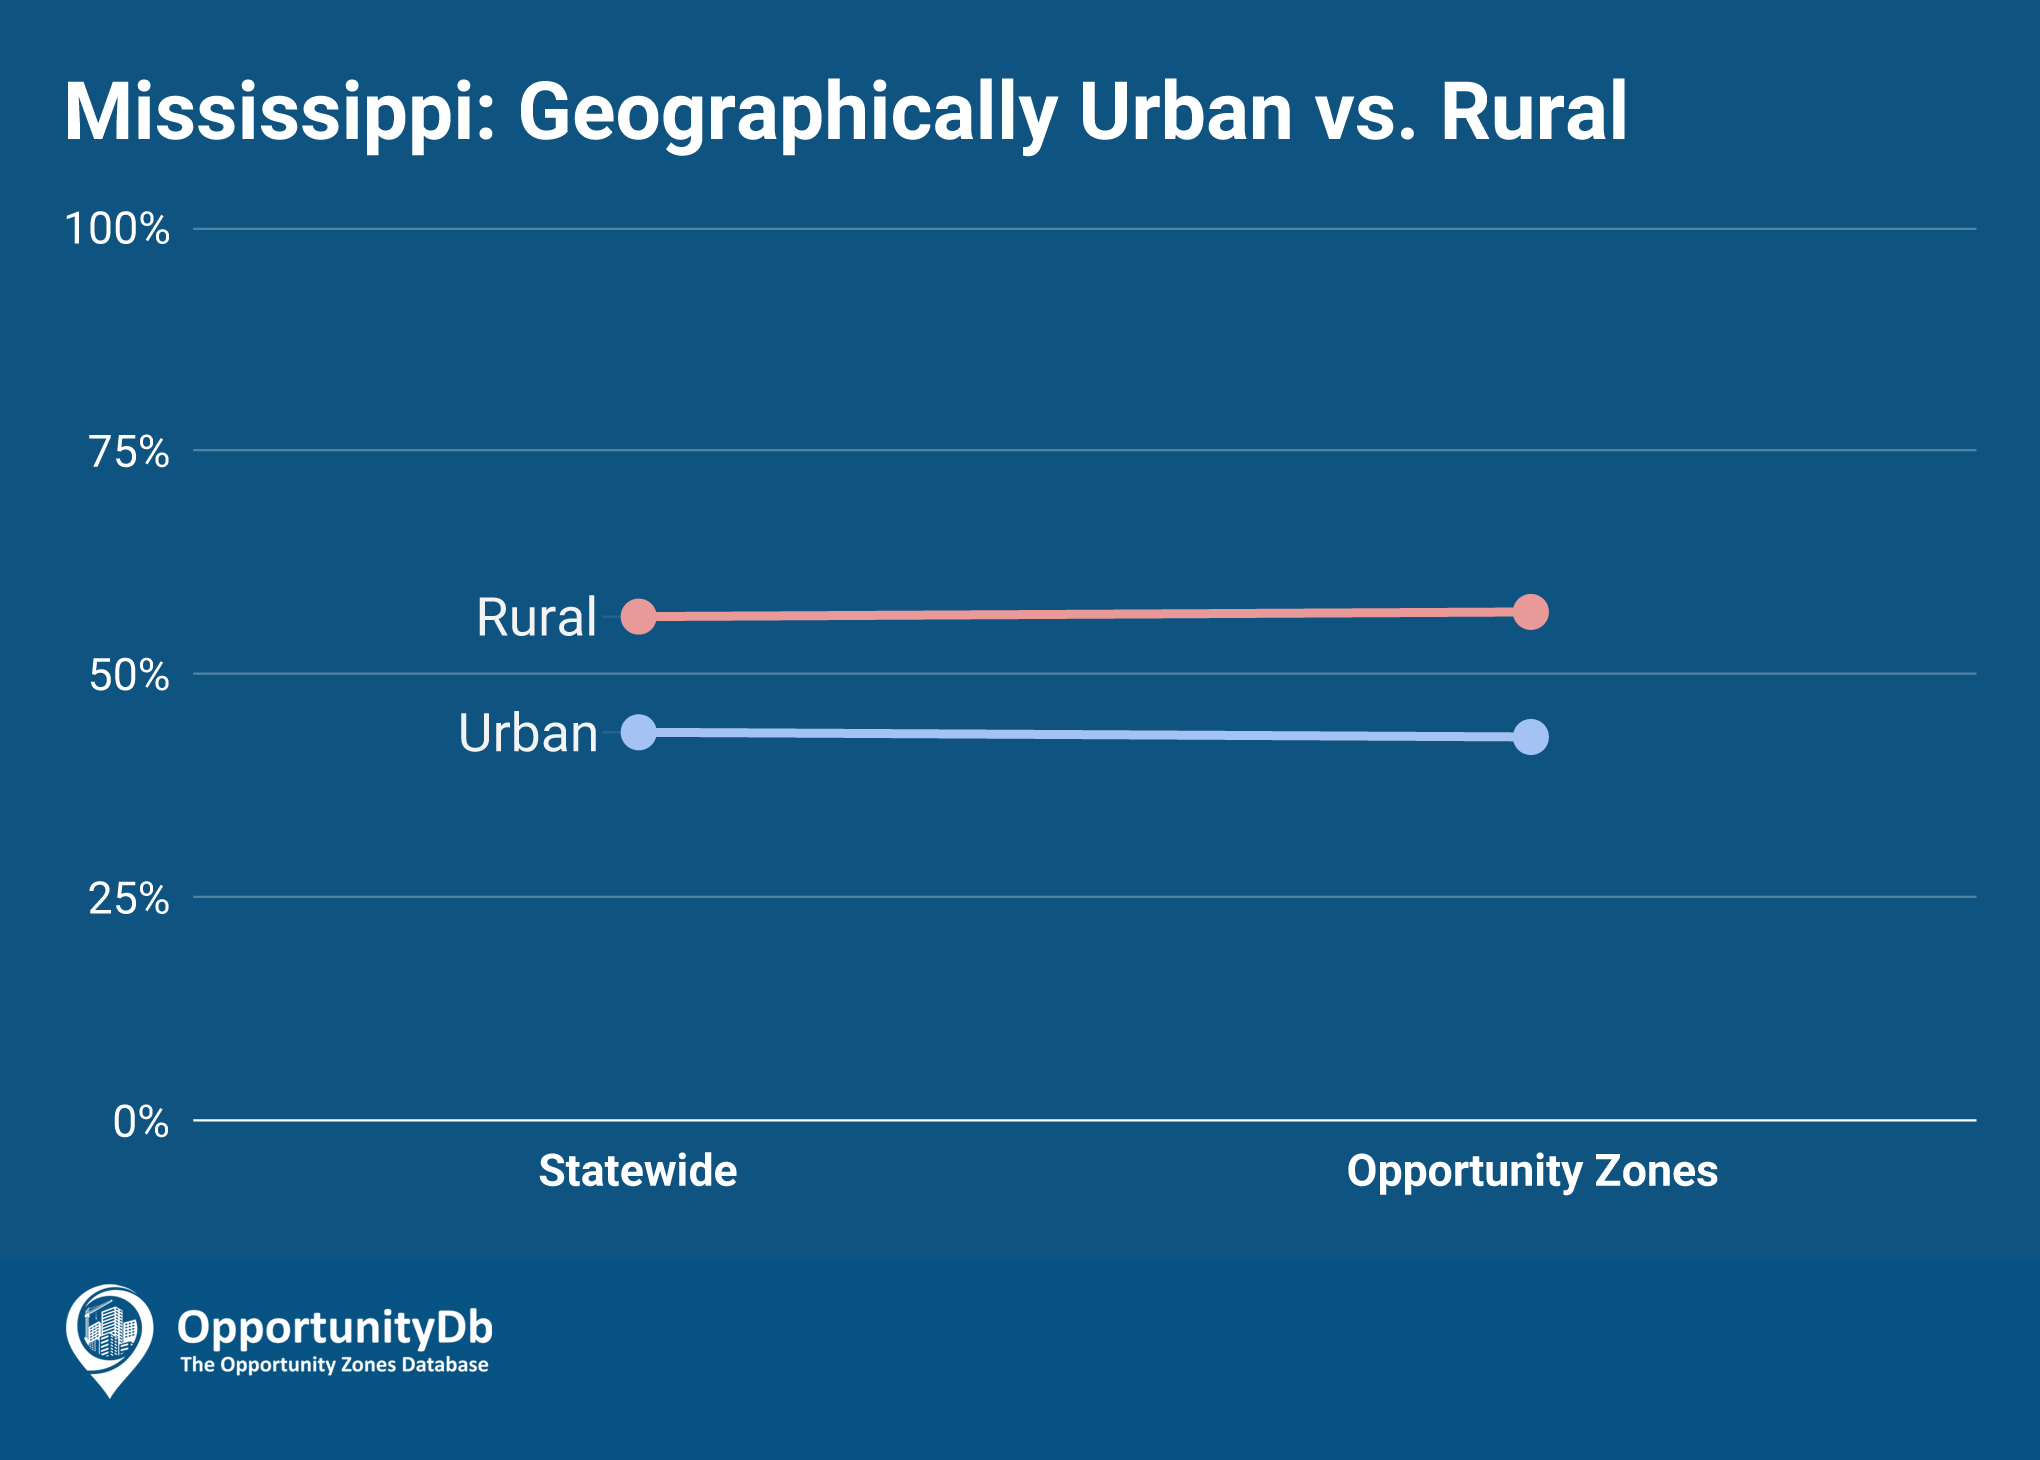 Urban vs. Rural in Mississippi Opportunity Zones